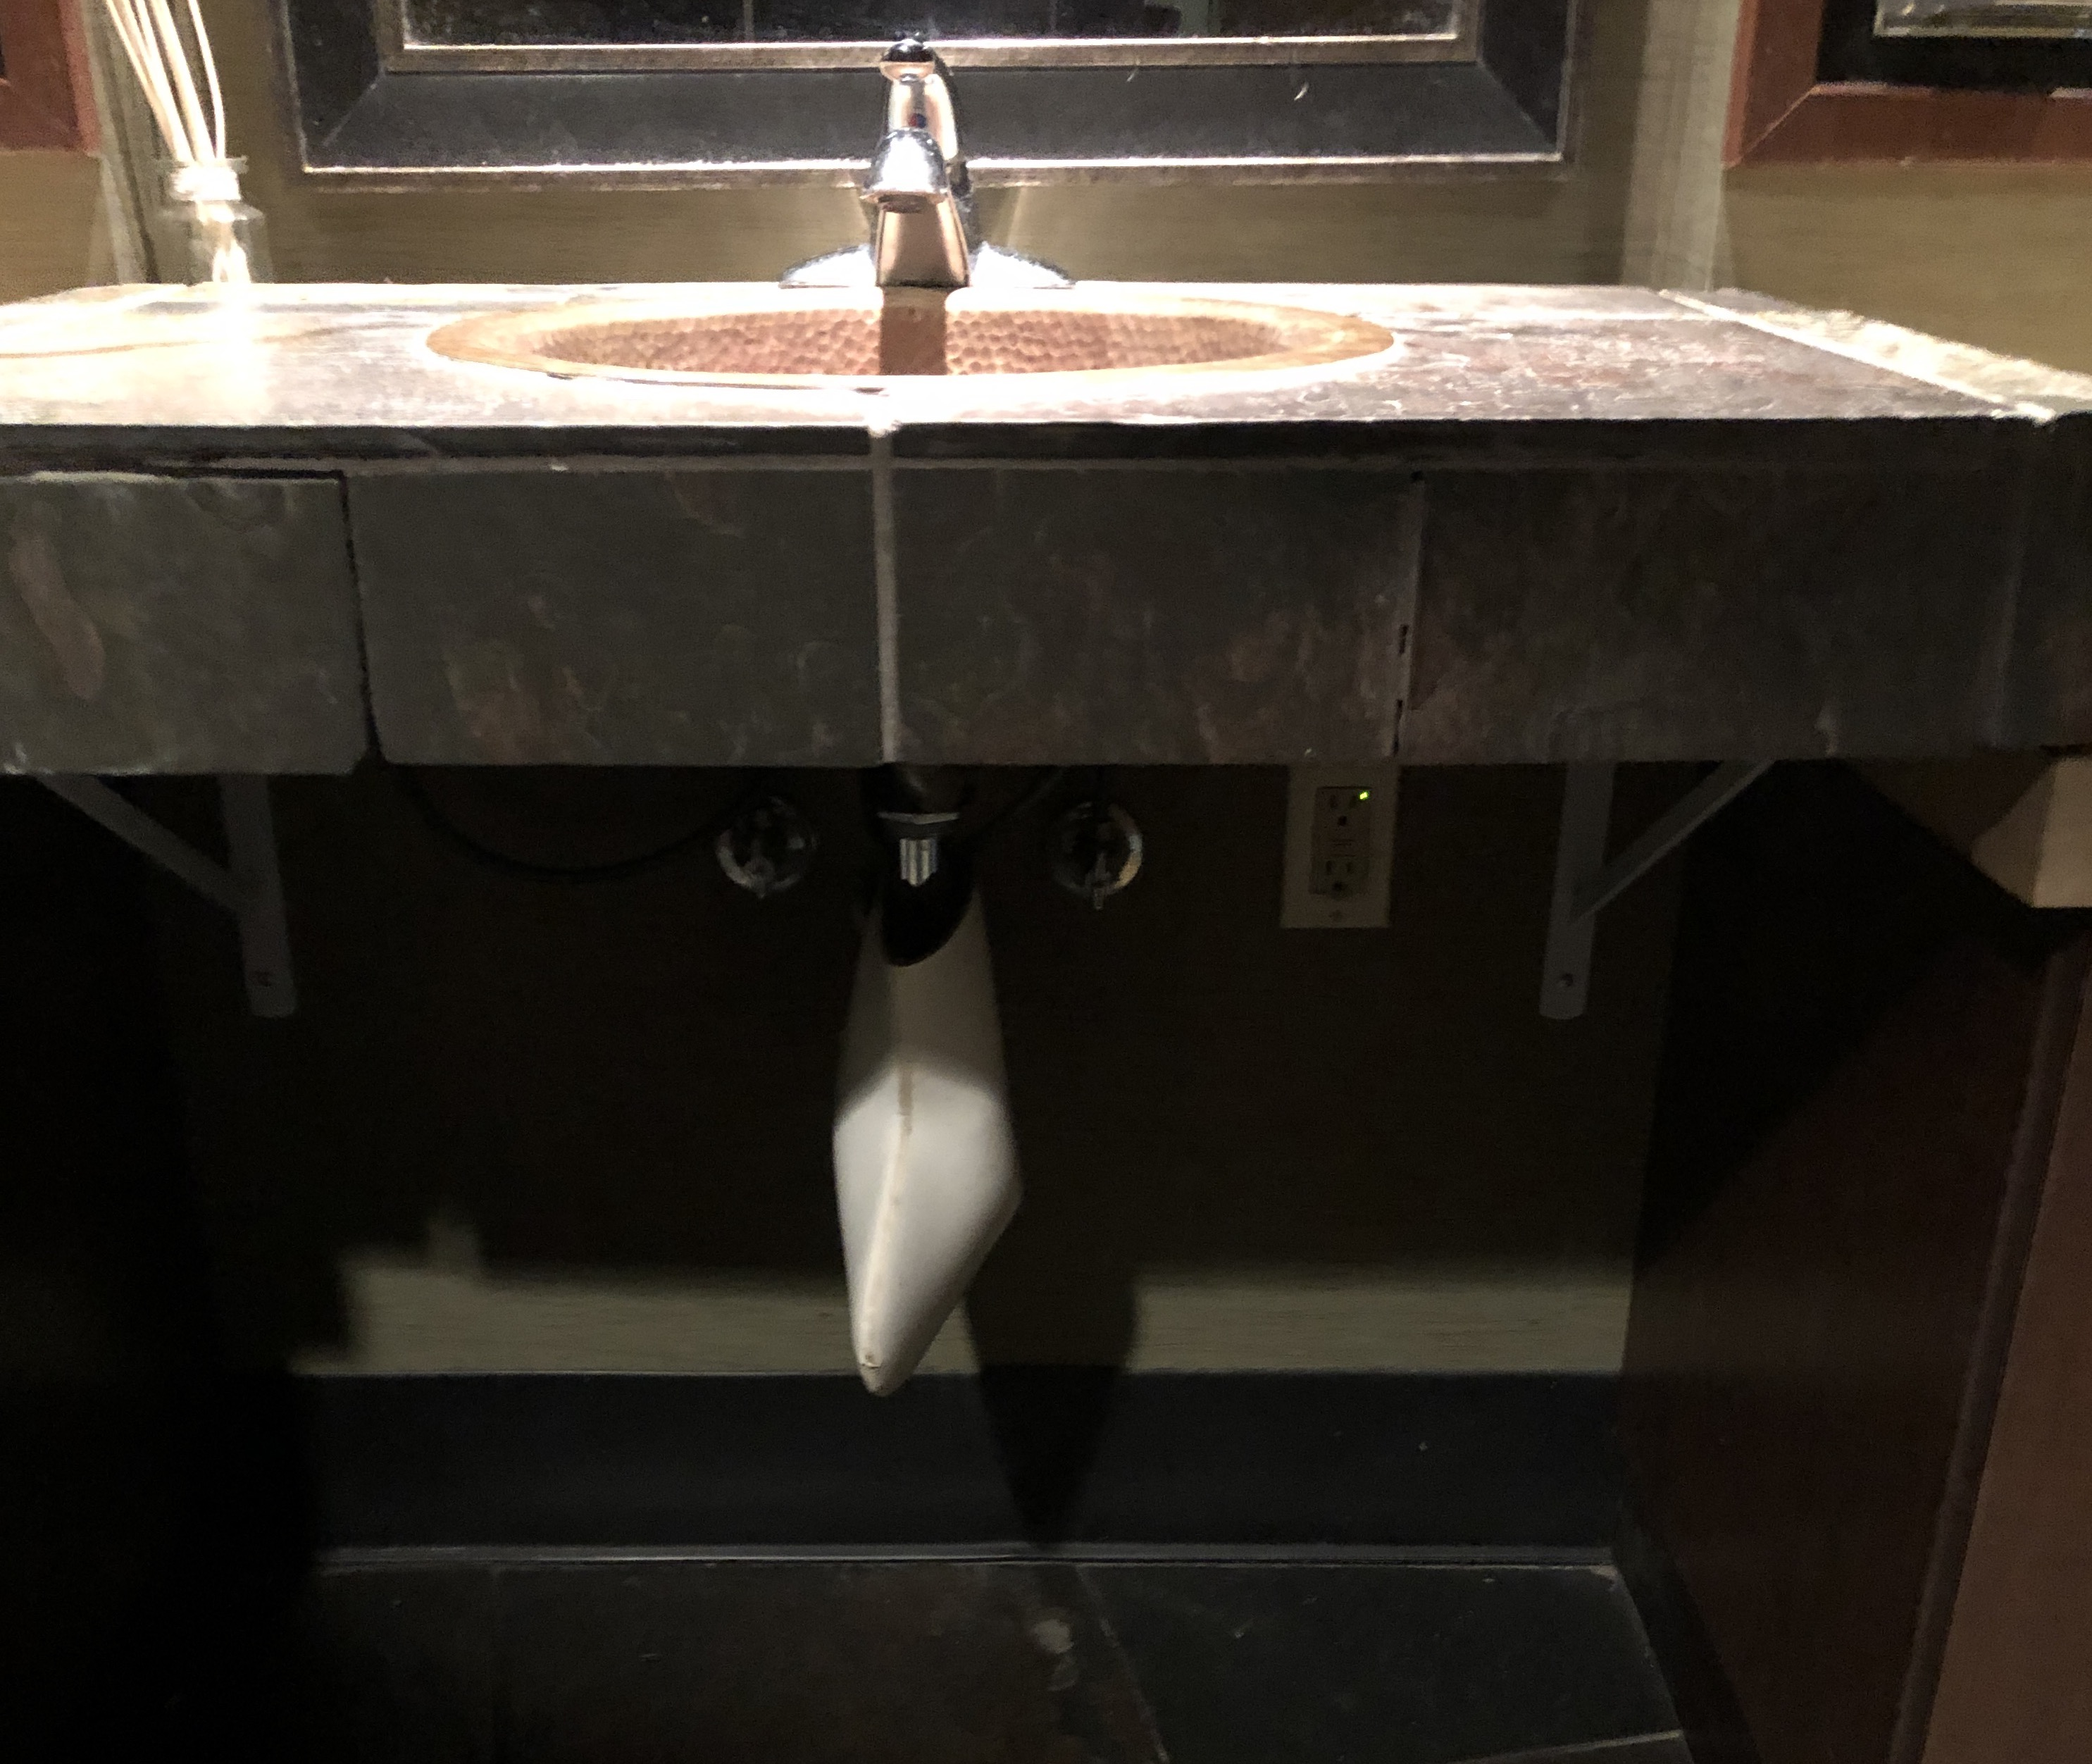 Women's accessible sink with pipe wrap